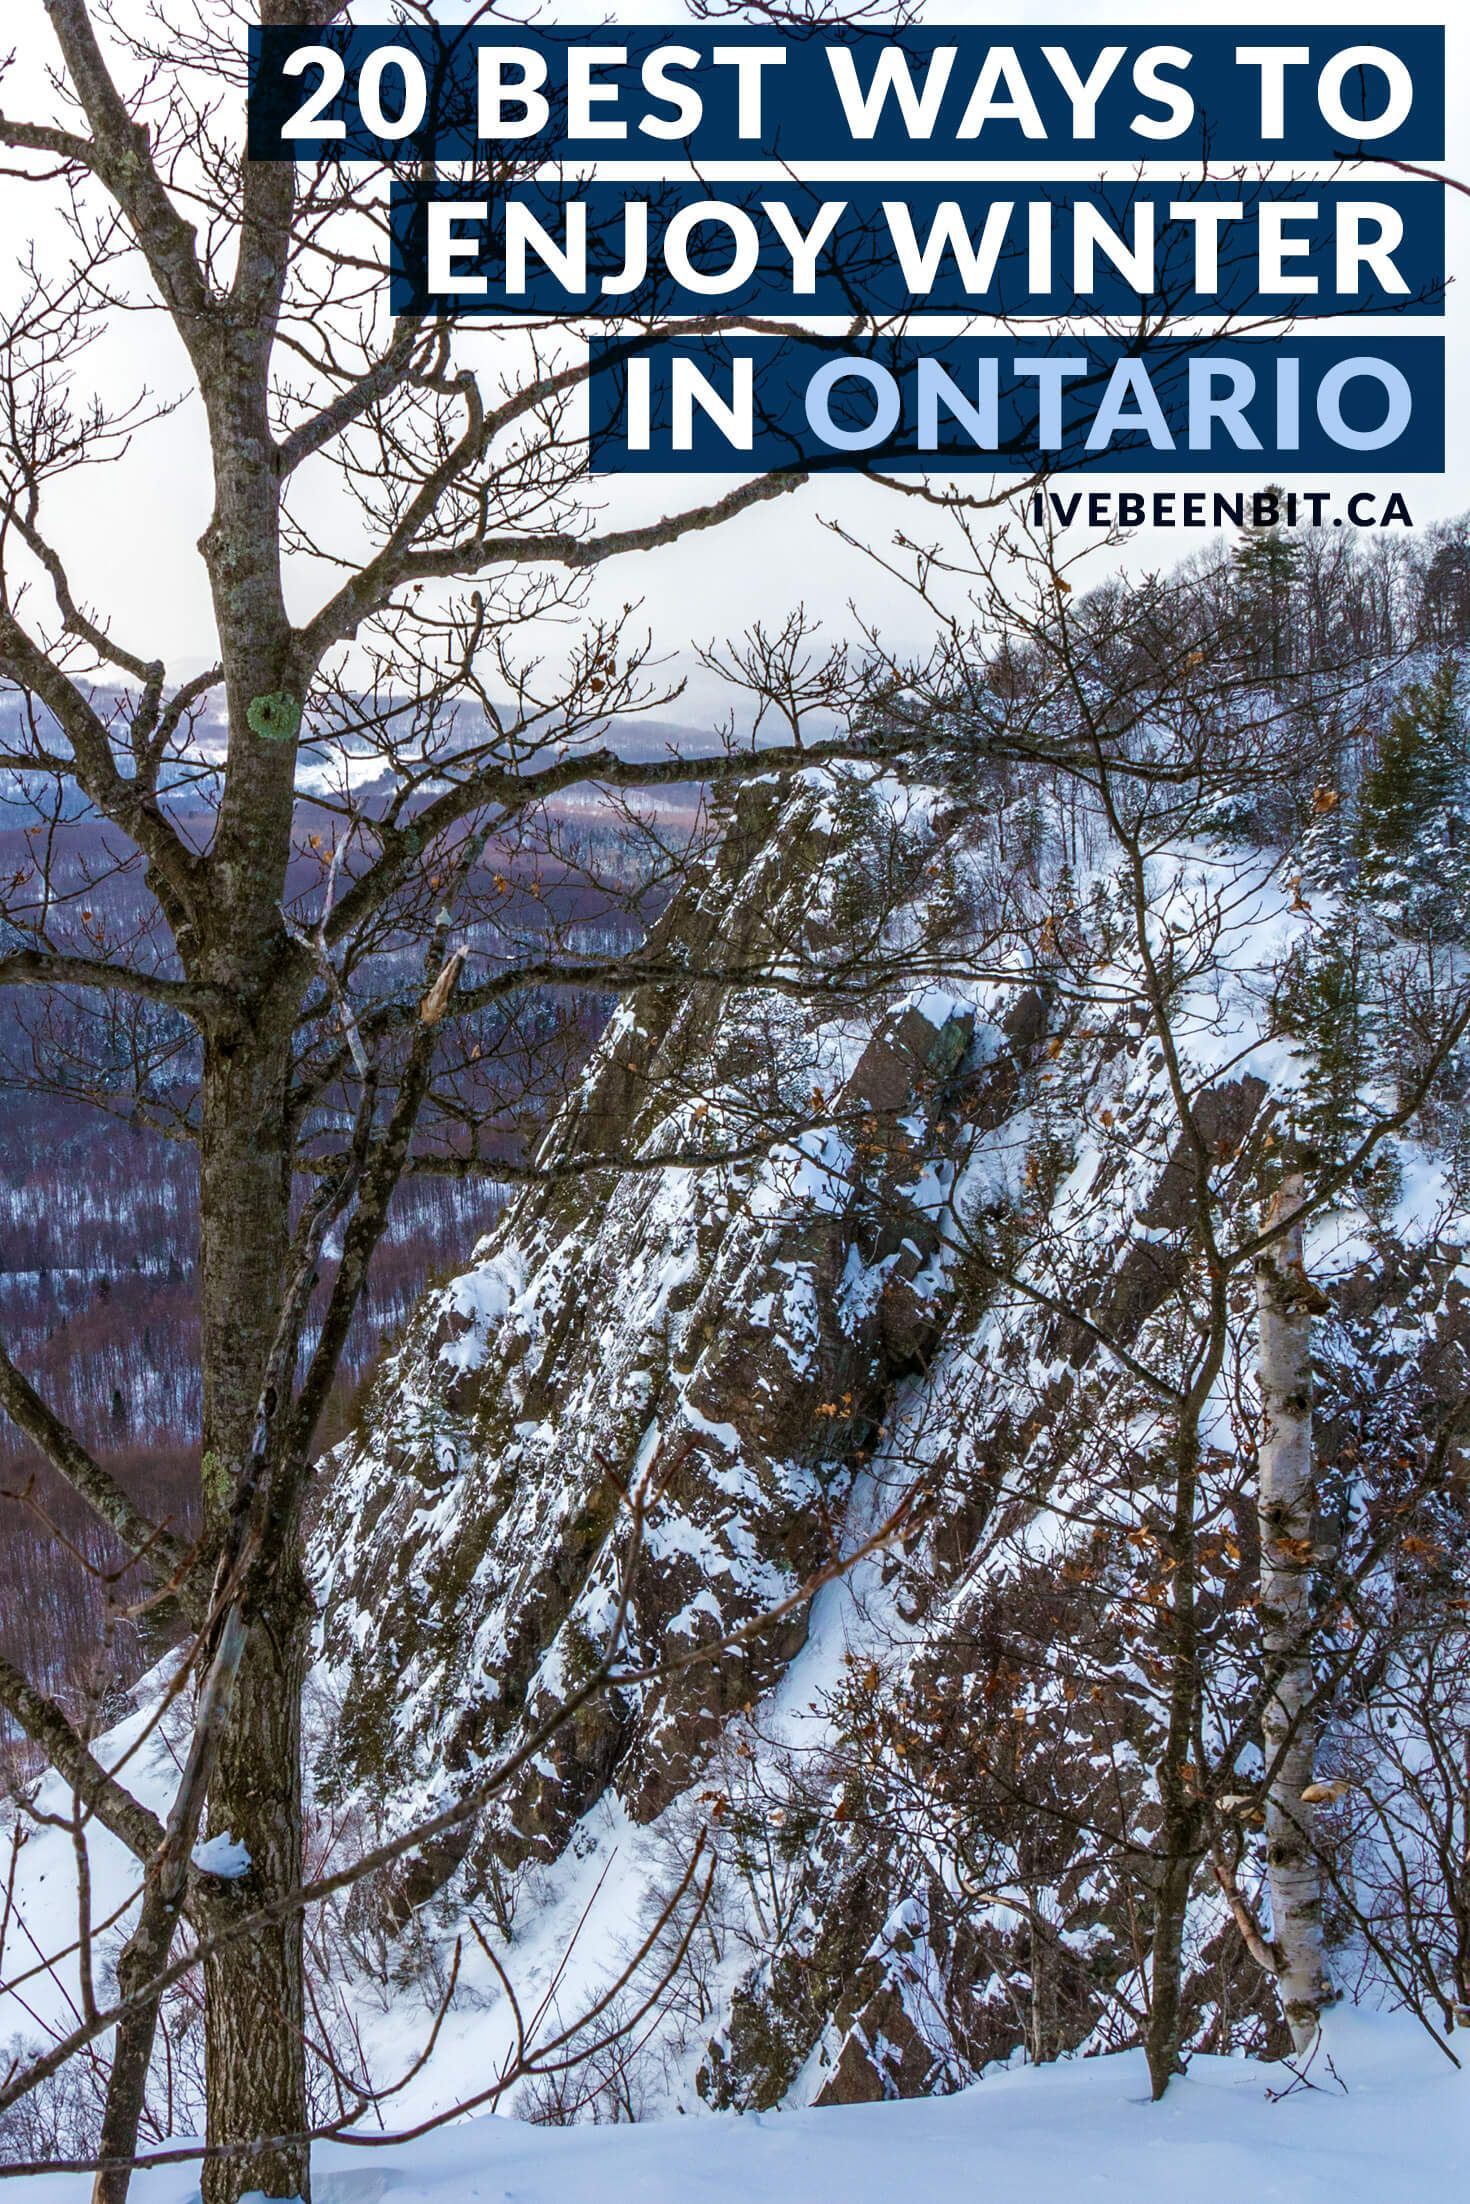 Things to Do in Ontario in Winter Top 20 Ways to Enjoy